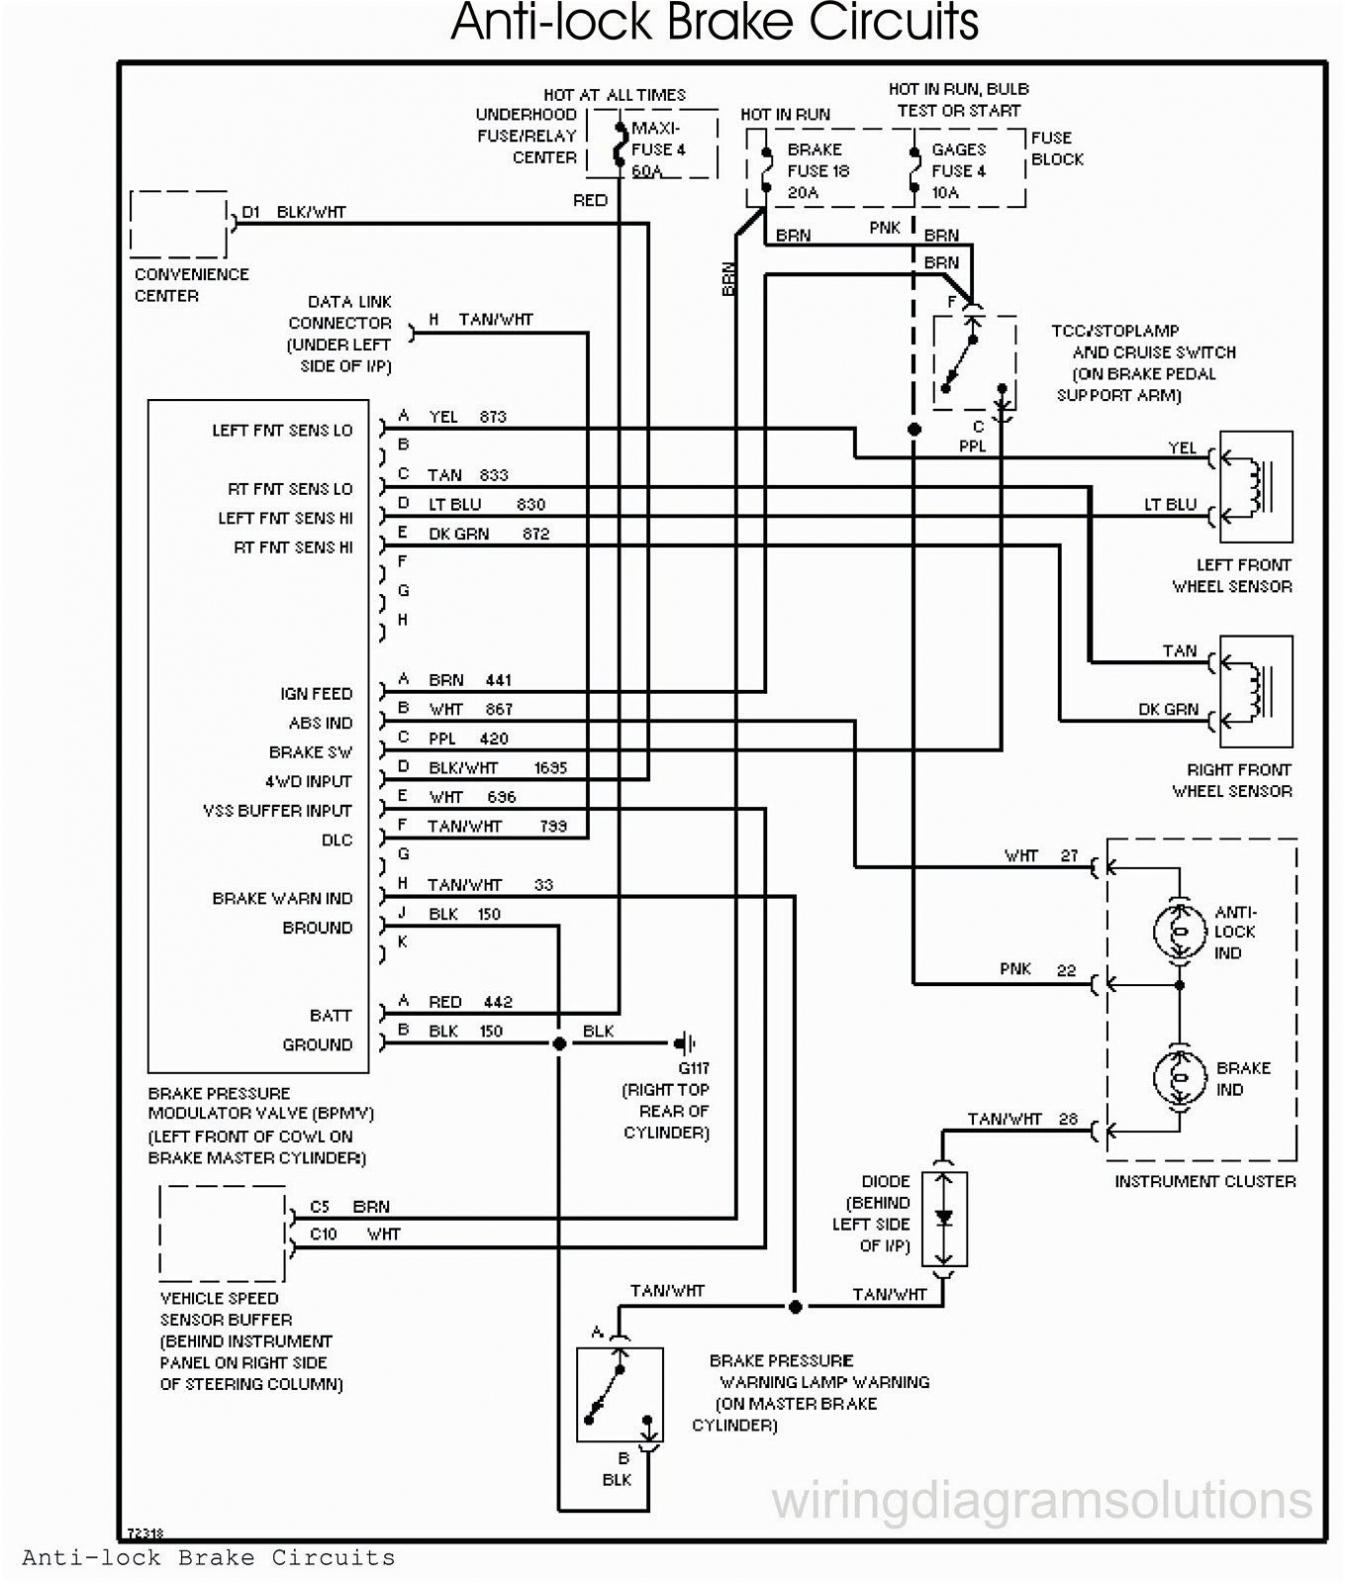 Trailer Wiring Diagram With Breakaway Switch